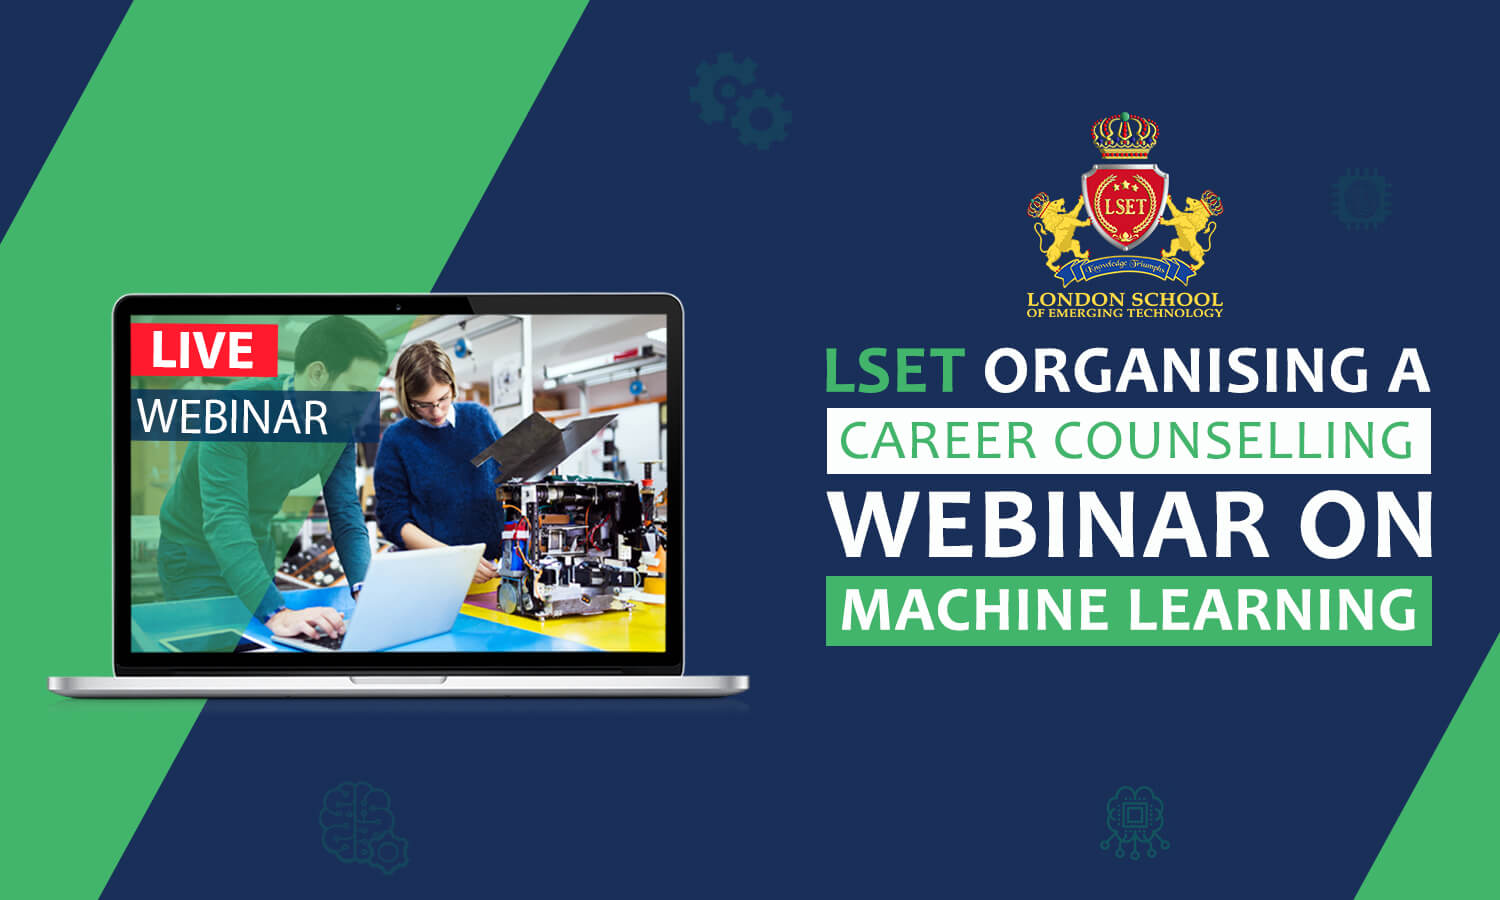 LSET is Organising a Career Counselling Webinar on Machine Learning